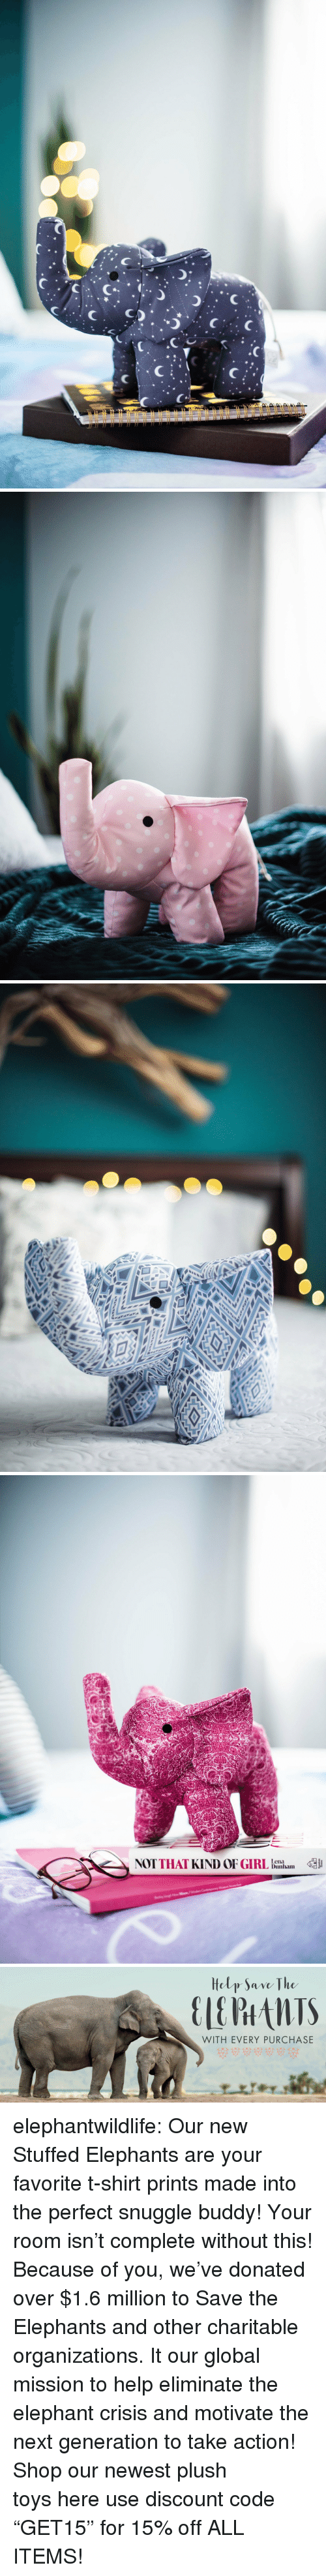 "Tumblr, Blog, and Elephant: Lena  NT THAT KIND OF GIRL Dunham   Hely Save The  WITH EVERY PURCHASE elephantwildlife:   Our new Stuffed Elephants are your favorite t-shirt prints made into the perfect snuggle buddy! Your room isn't complete without this!   Because of you, we've donated over $1.6 million to Save the Elephants and other charitable organizations. It our global mission to help eliminate the elephant crisis and motivate the next generation to take action! Shop our newest plush toys here   use discount code ""GET15"" for 15% off ALL ITEMS!"